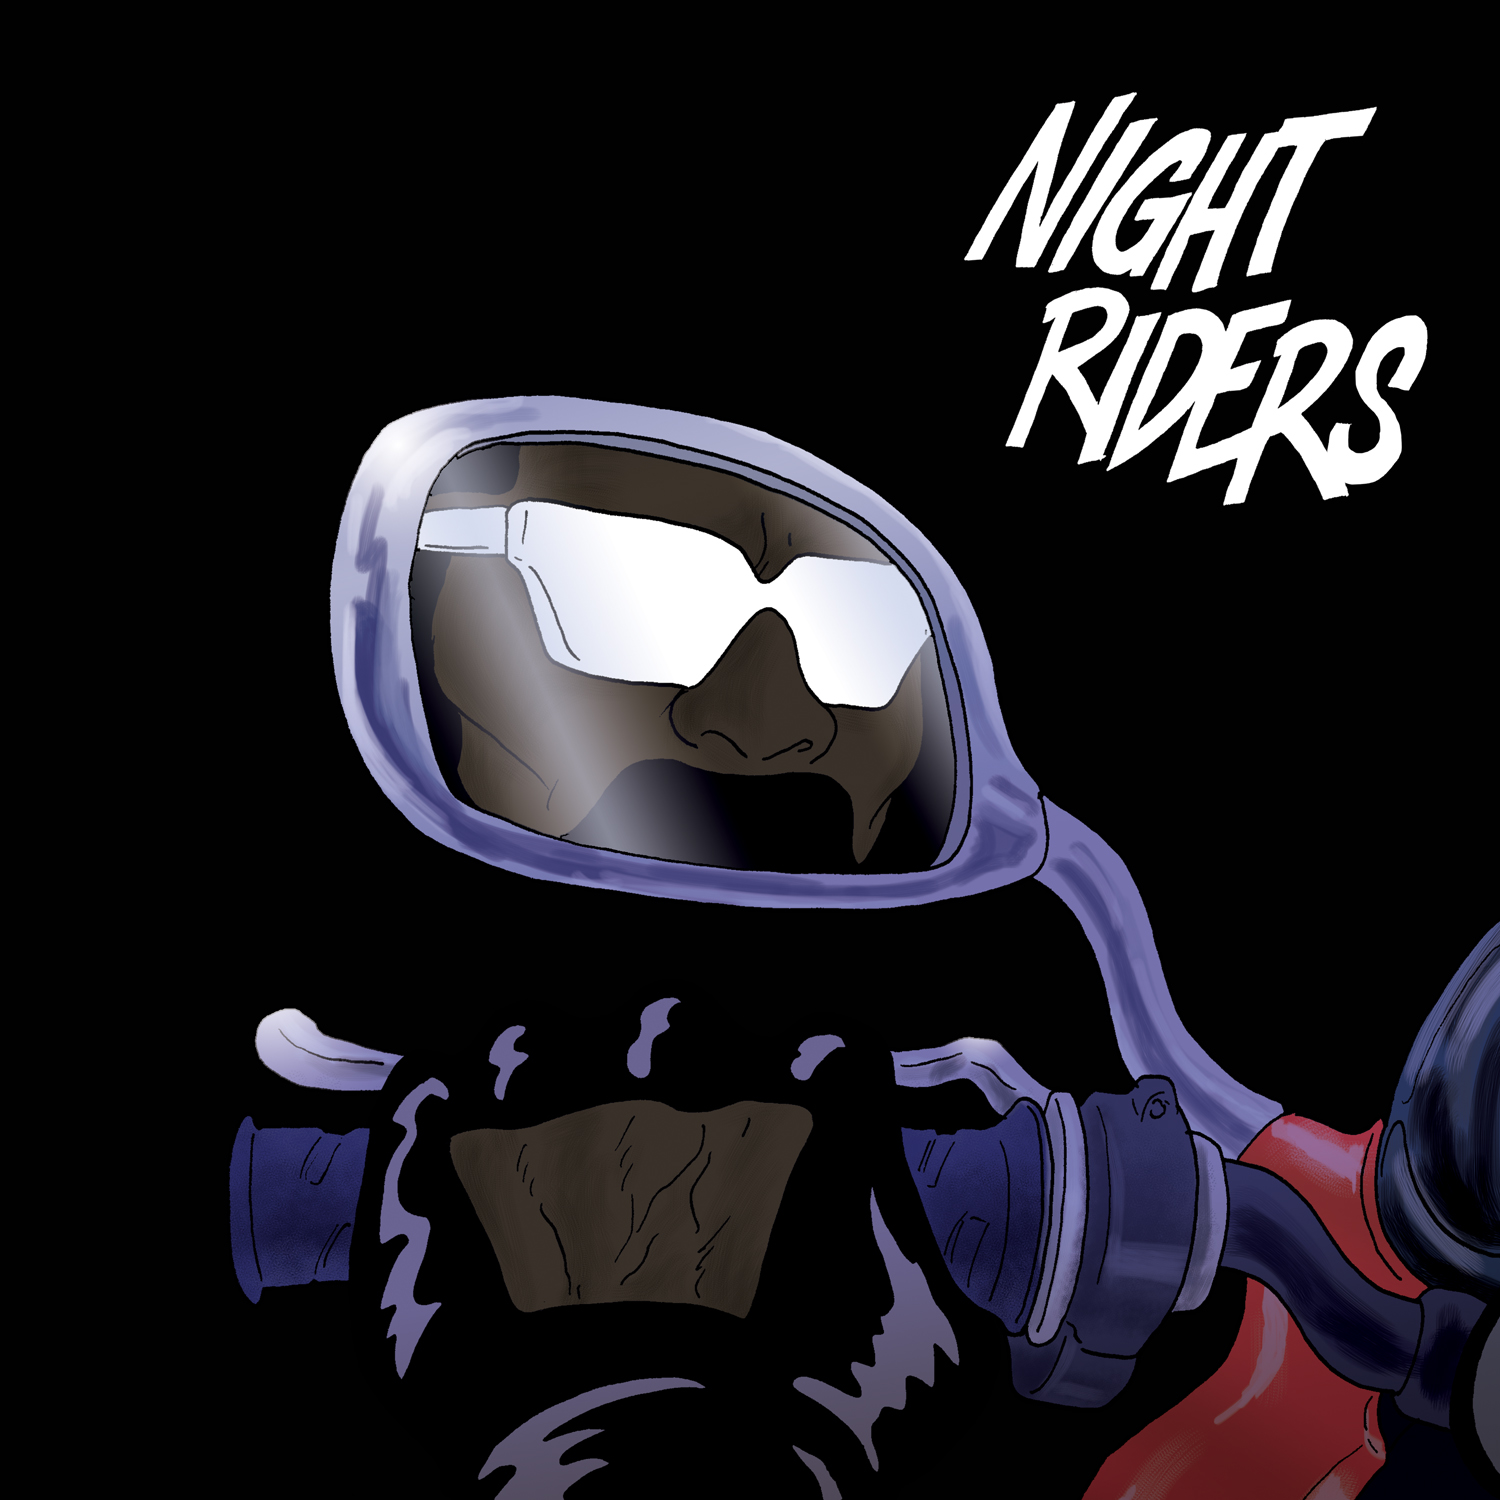 Fuori il video di Night Riders dei Major Lazer con Travi$ Scott, Pusha T, 2 Chainz e Mad Cobra